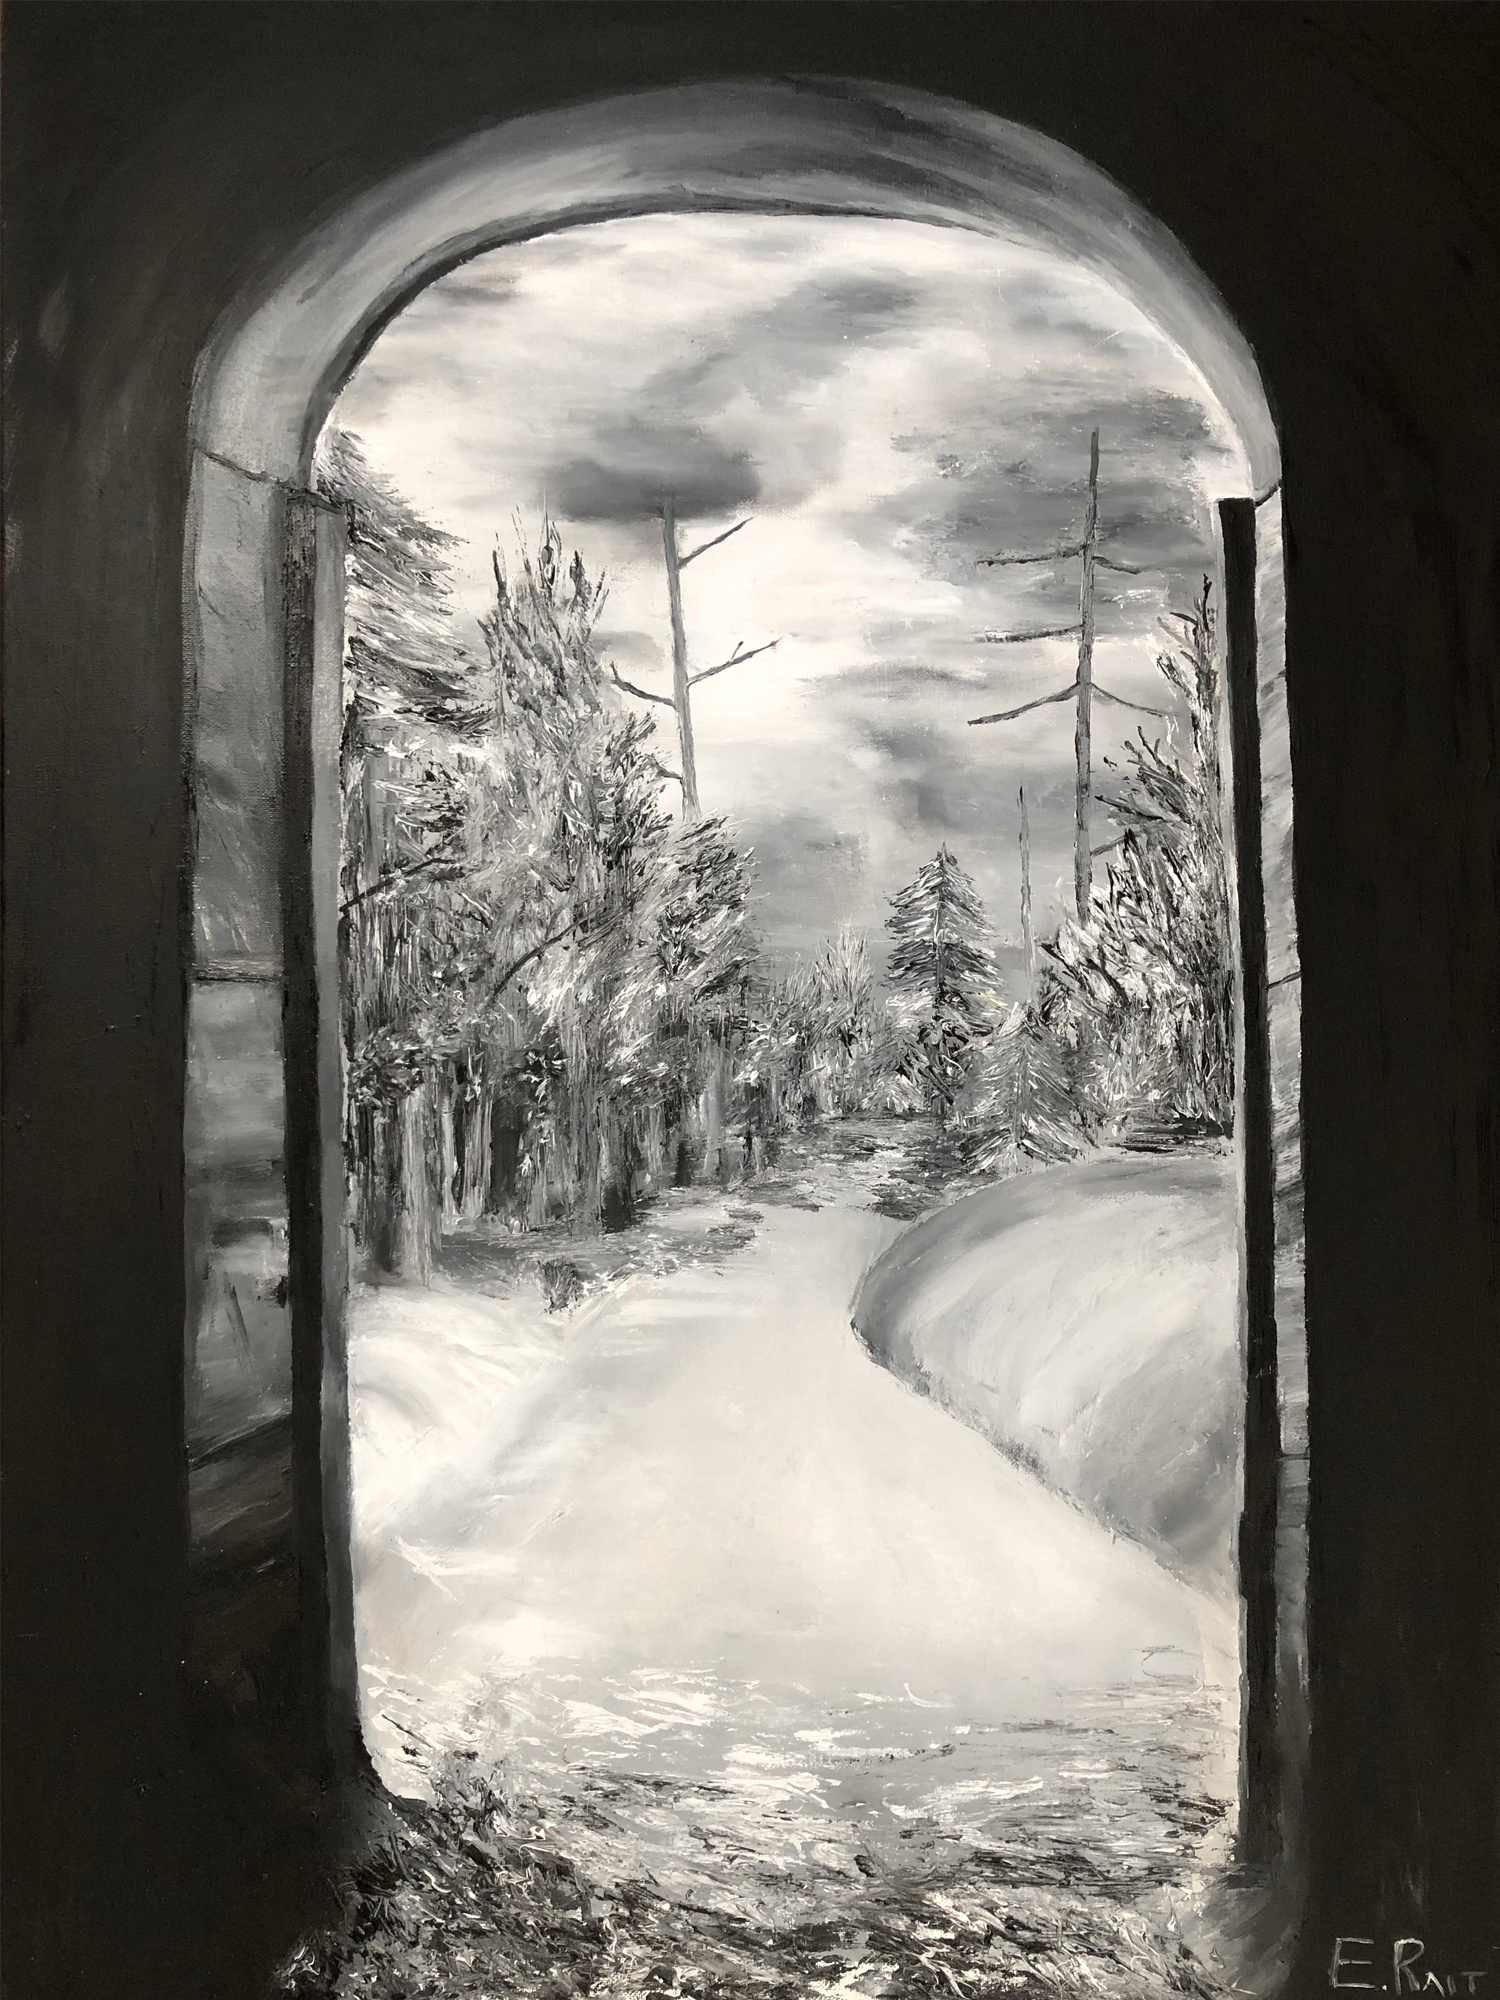 Exit from darkness artwork by Eduard Rait - art listed for sale on Artplode